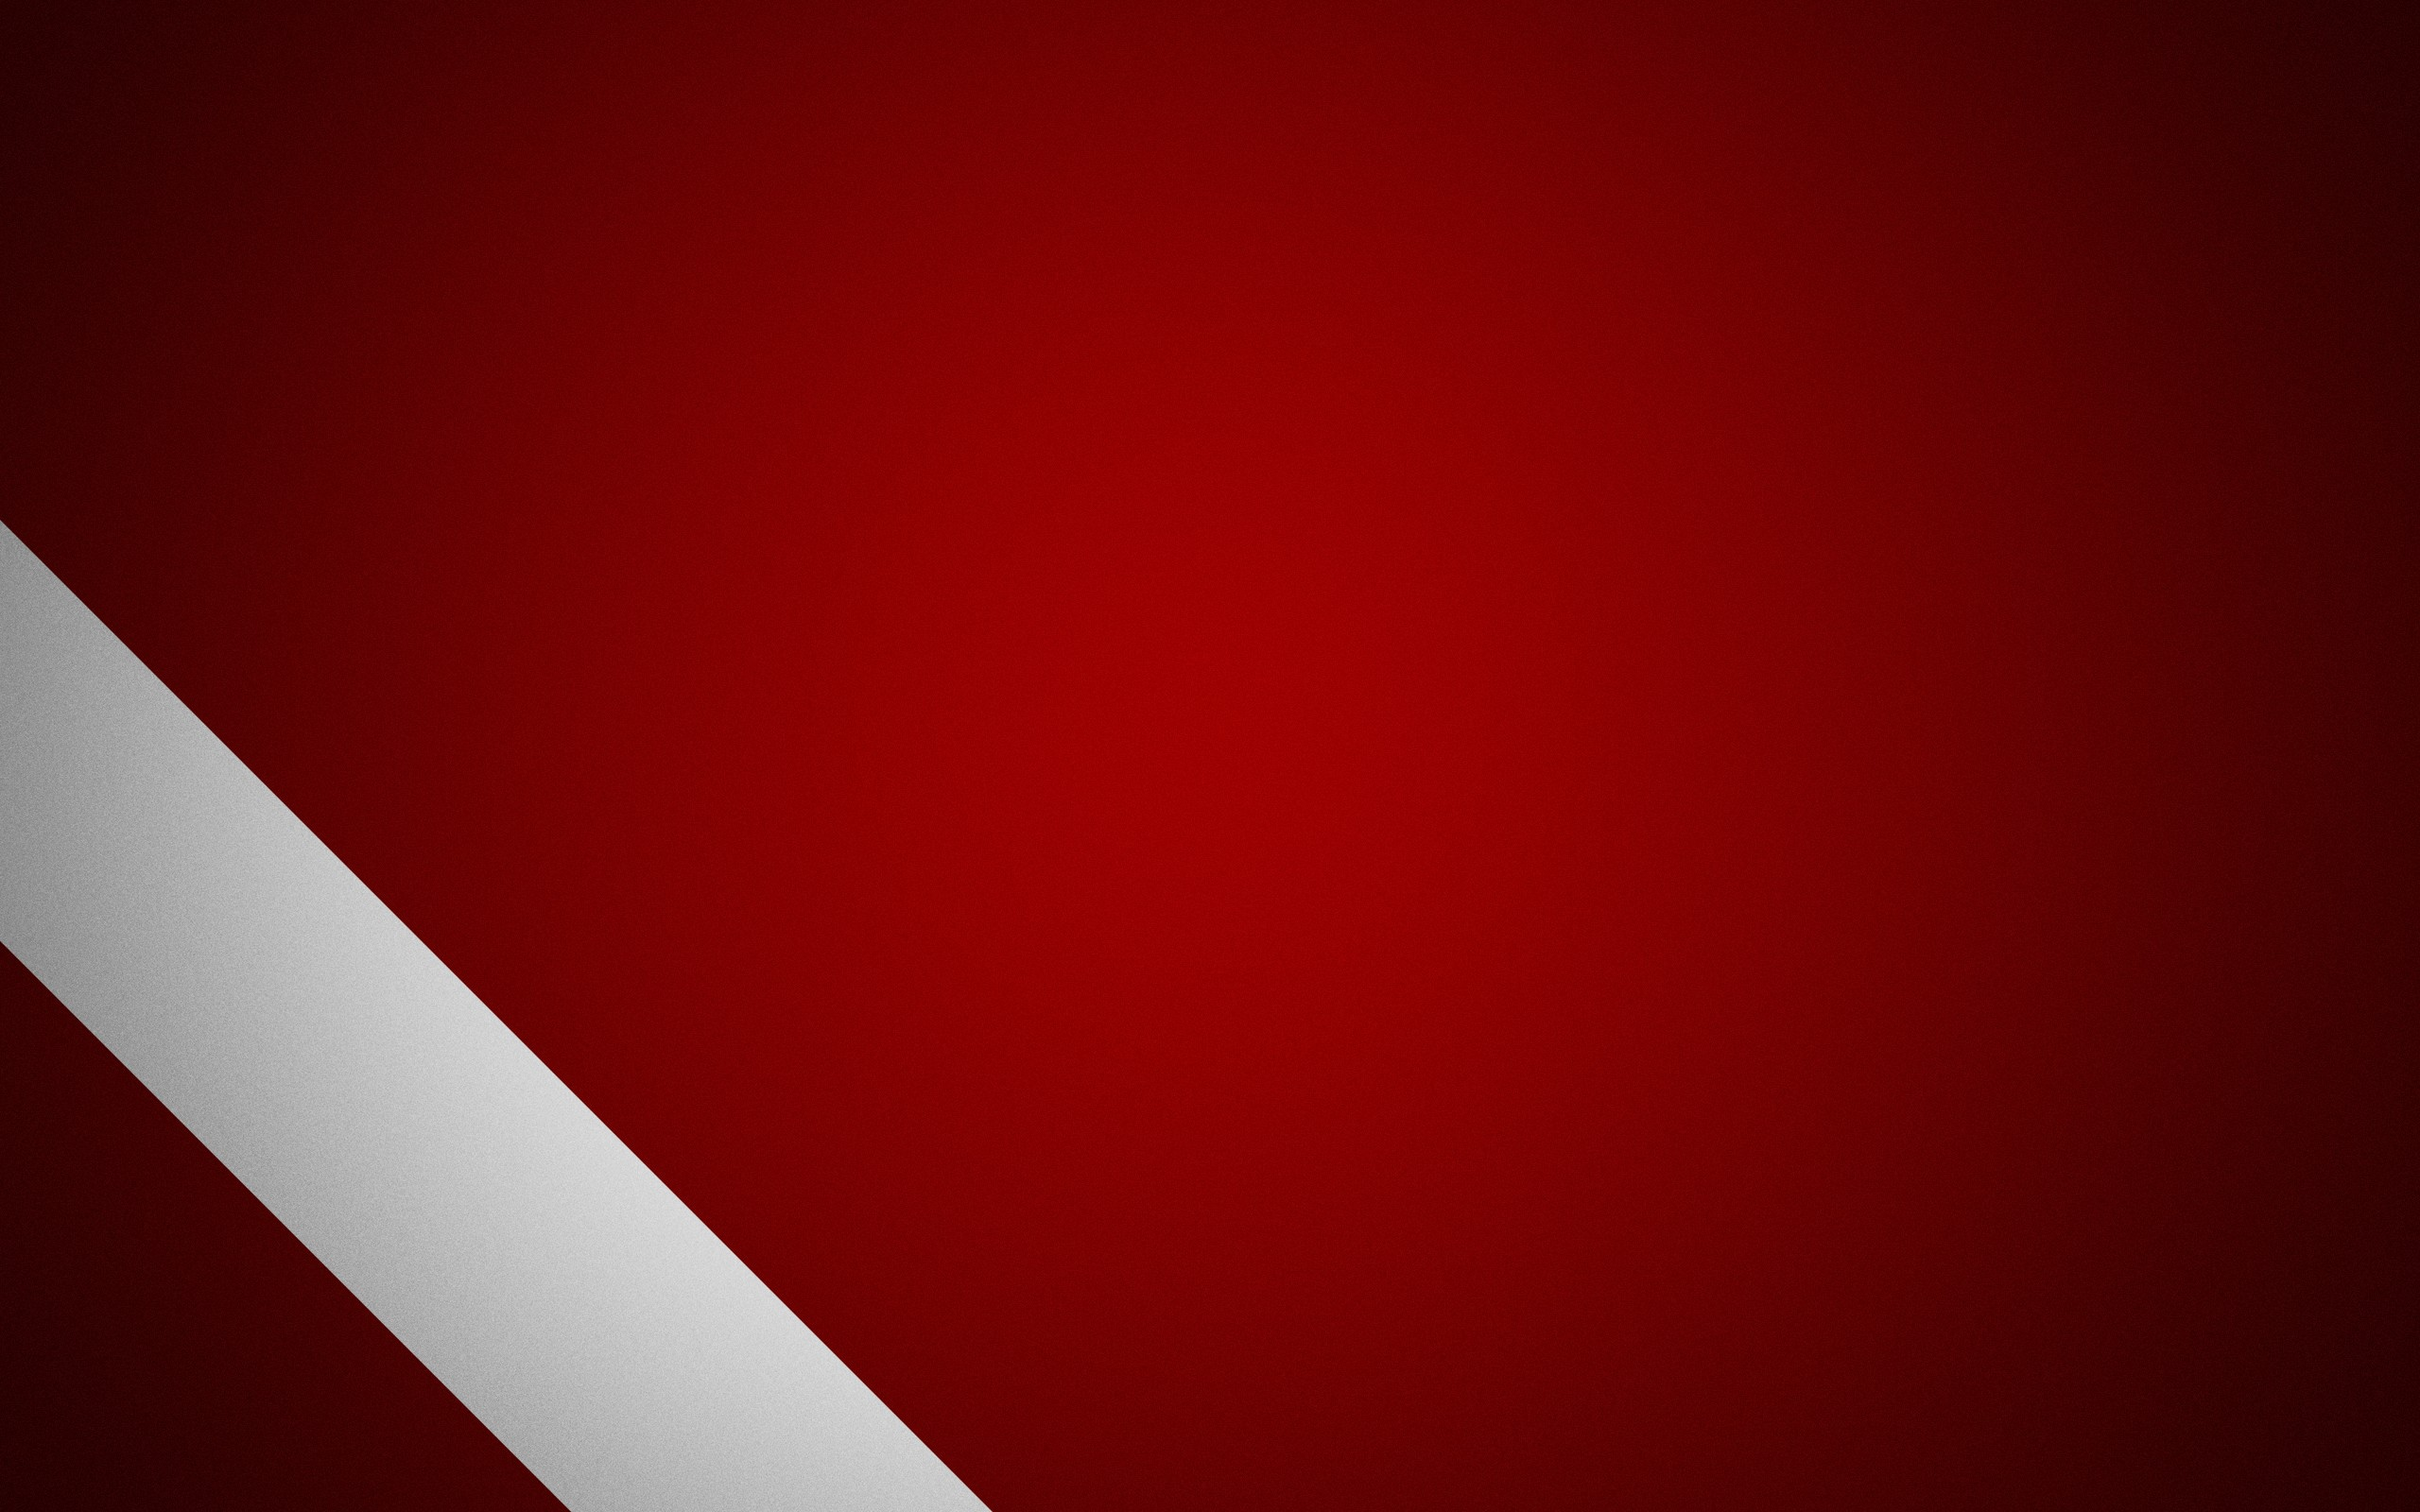 2560x1600 White and Red desktop PC and Mac wallpaper 2560x1600